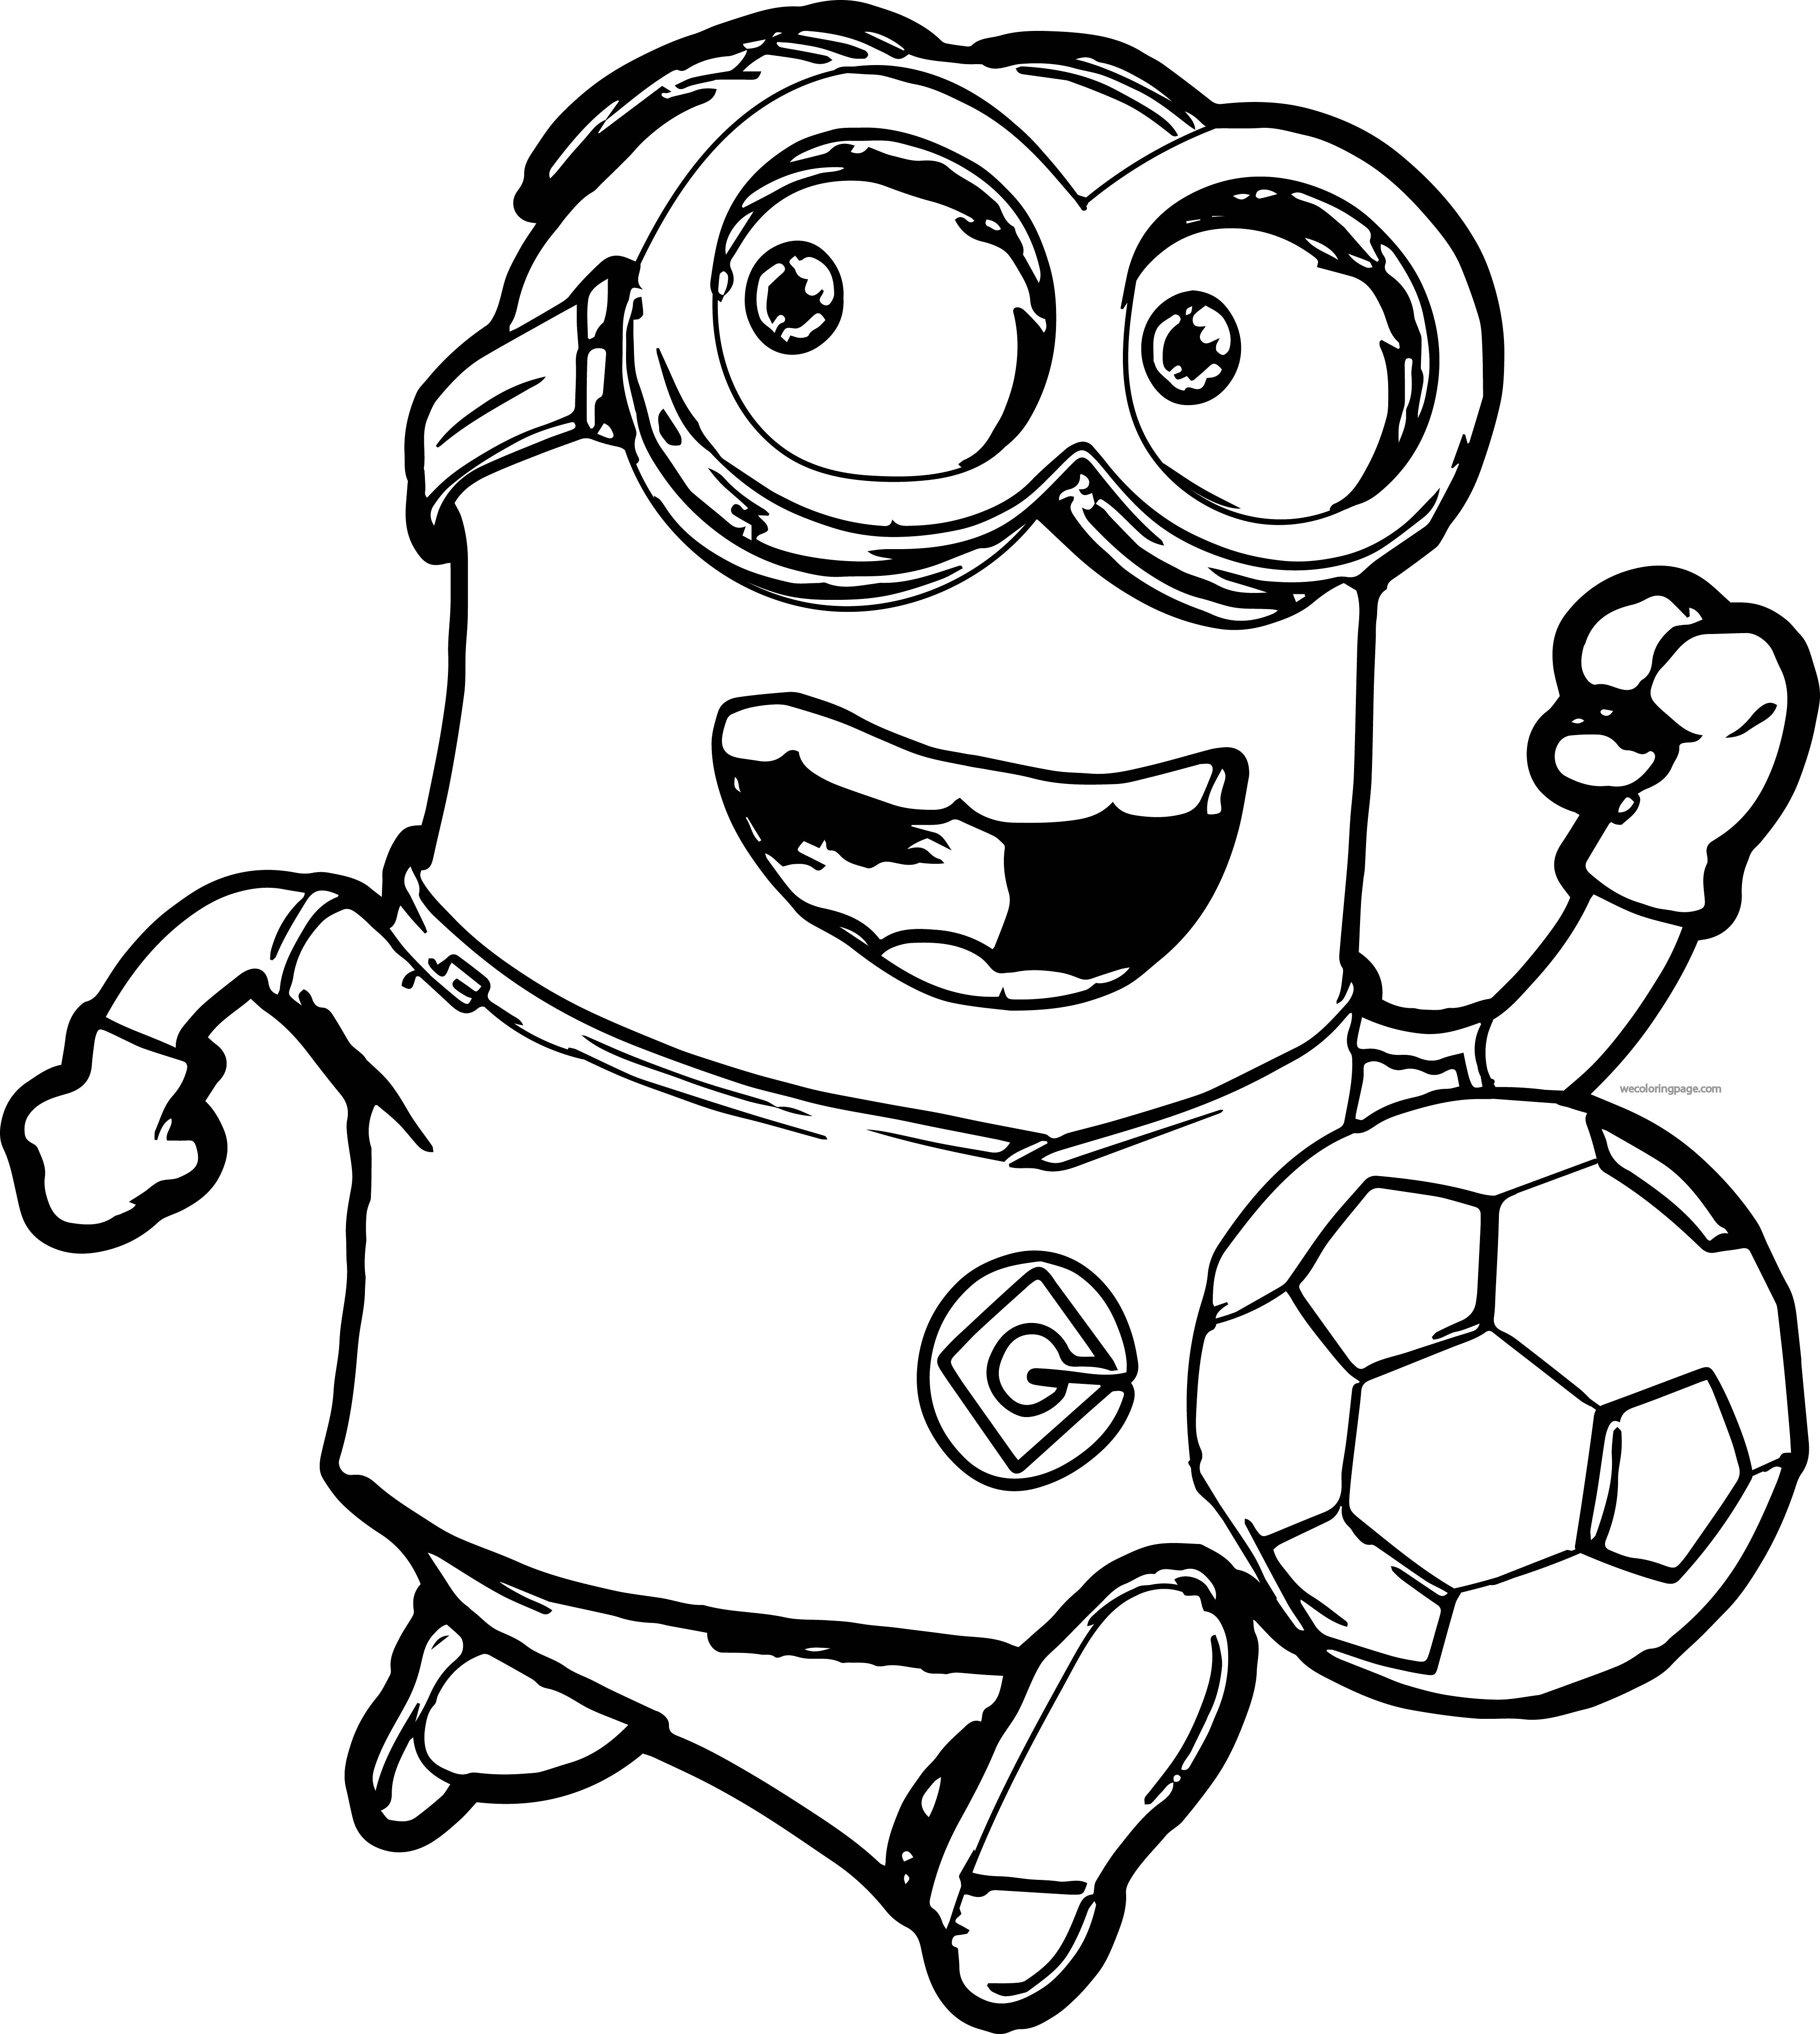 Download Free Minion Printable